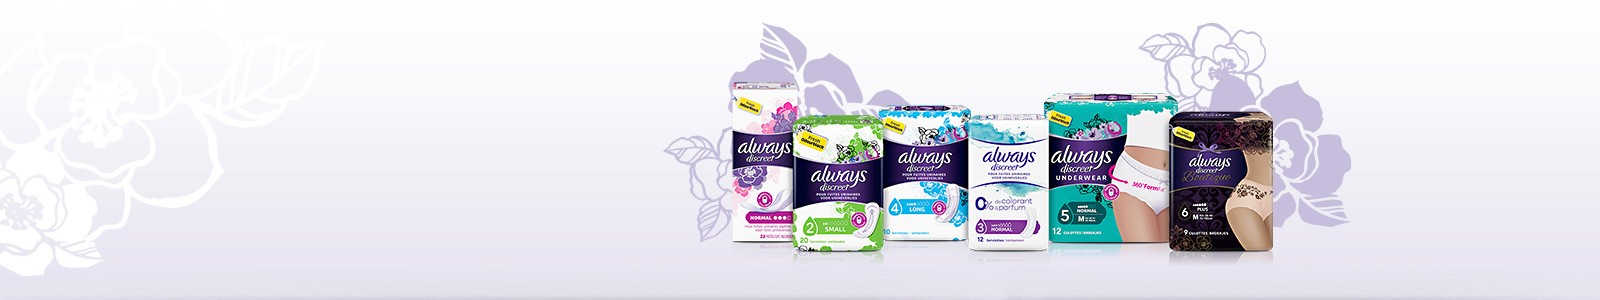 Protection incontinence urinaire - ALWAYS DISCREET